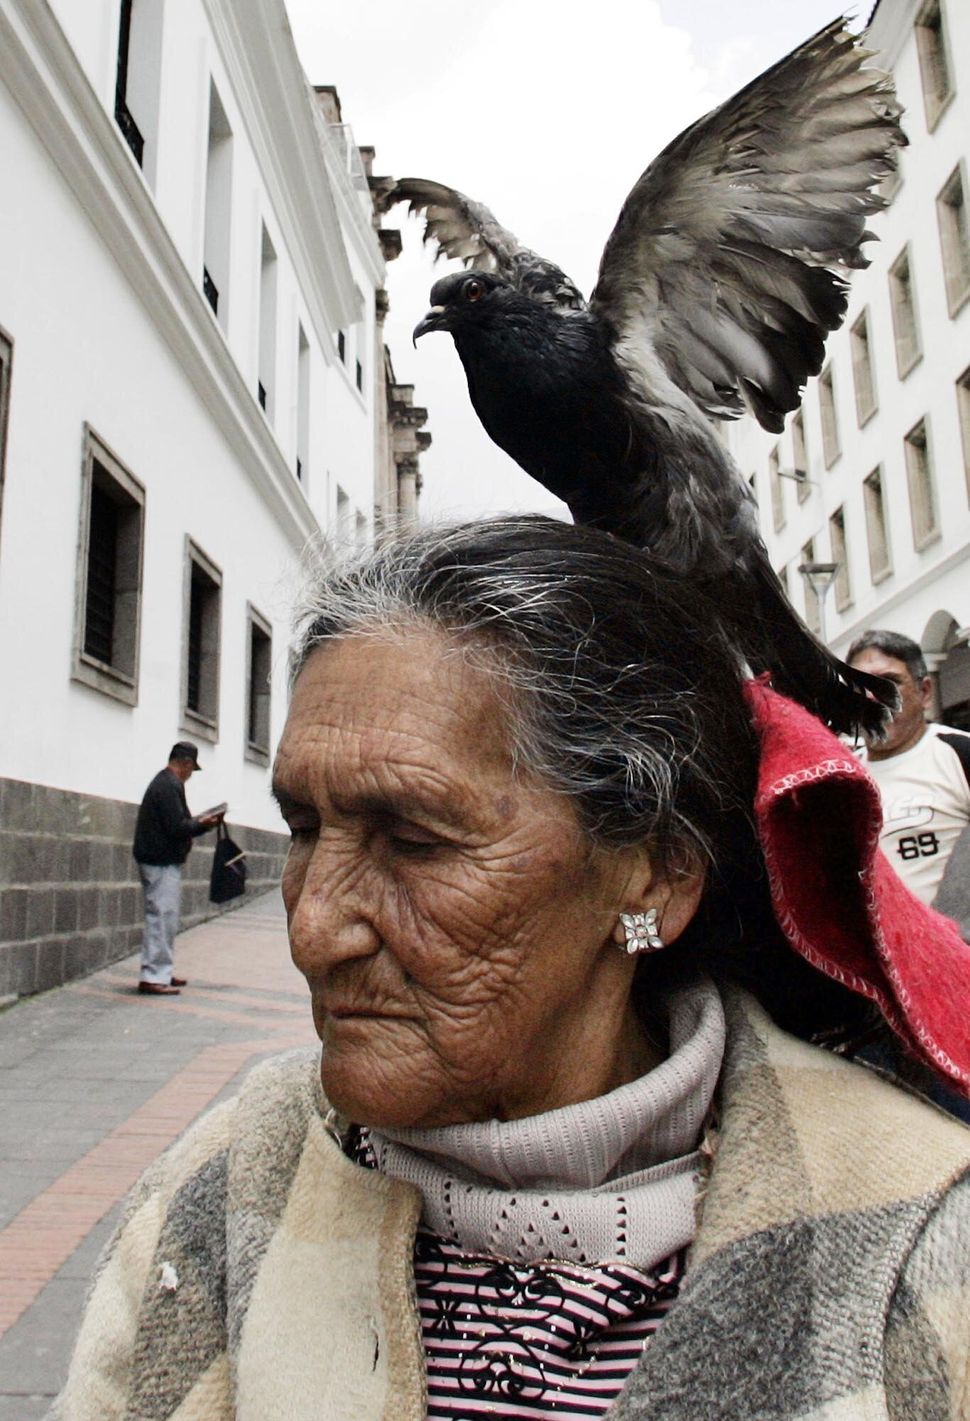 A woman carries her pet pigeon named Isabel, on her head as she walks in downtown Quito, Thursday, March 27, 2008. (Dolores O